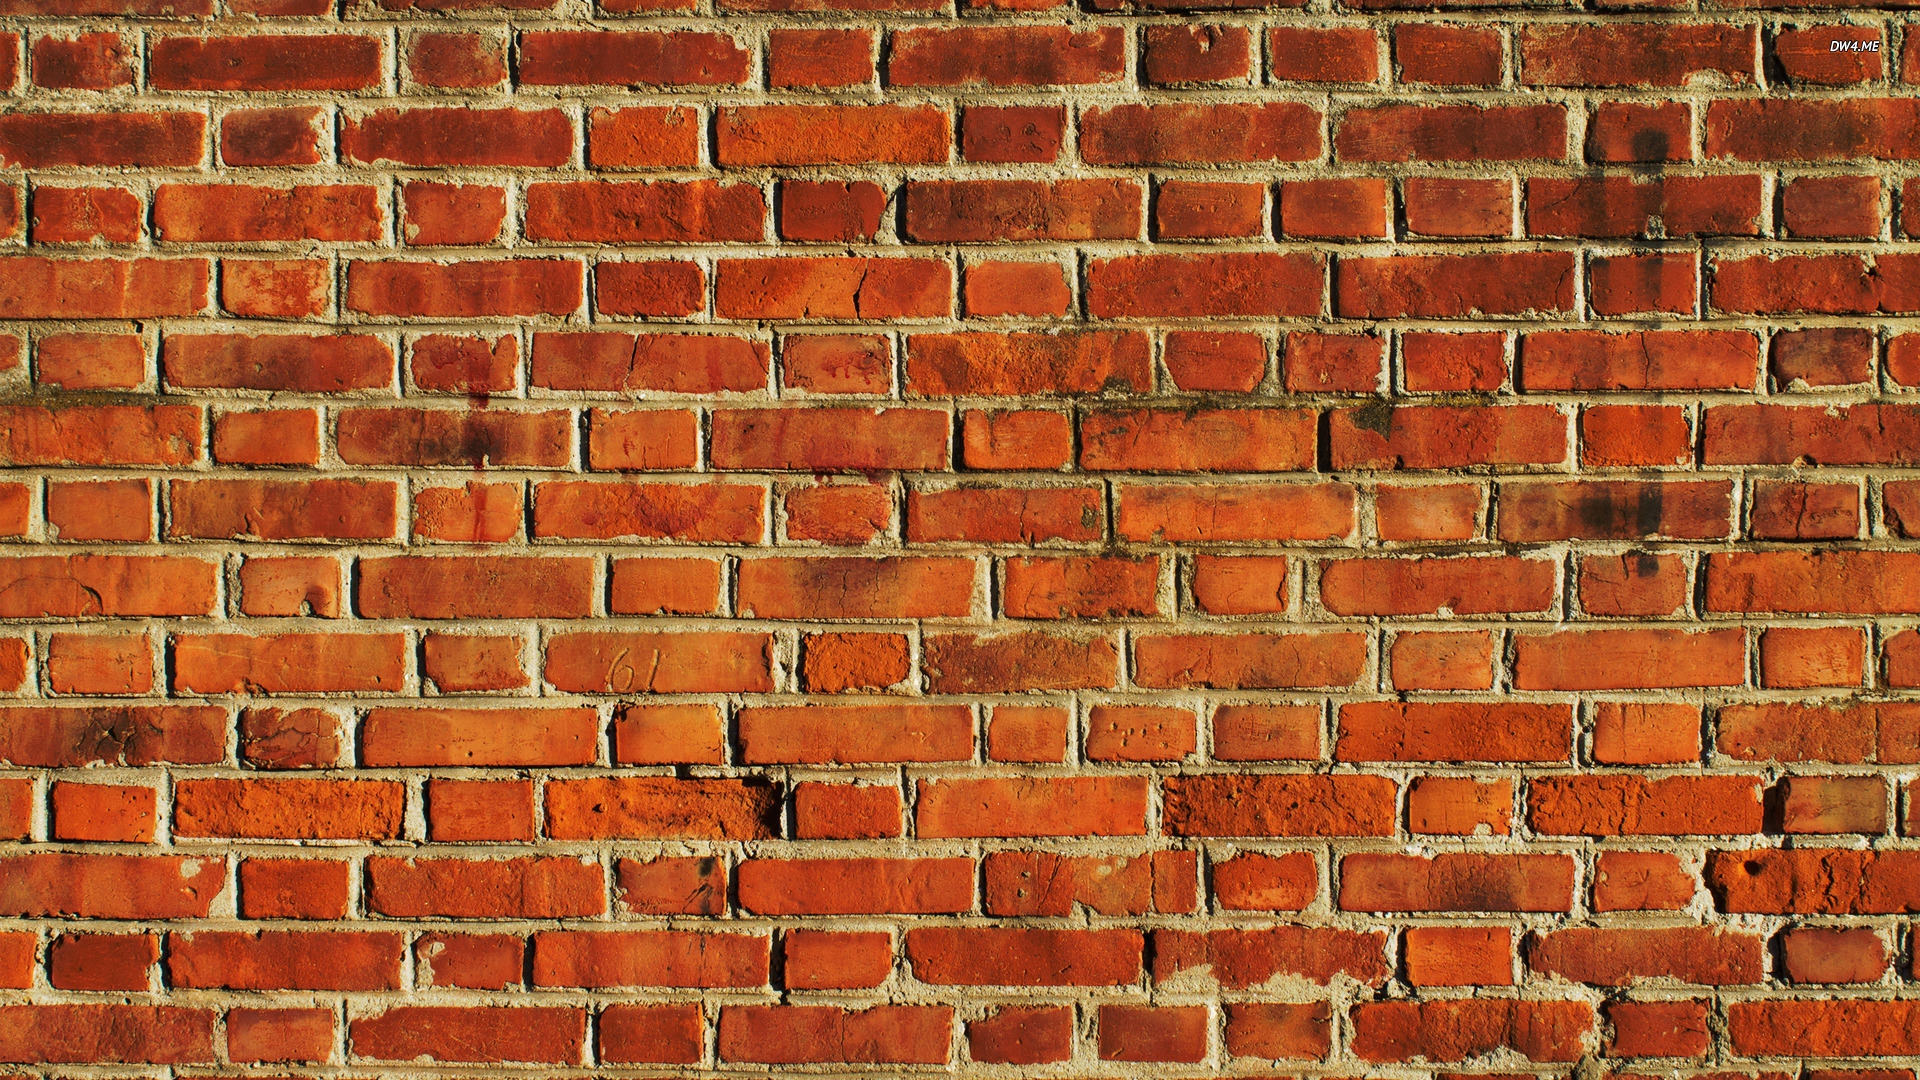 top brick wall design in brick wall wallpaper